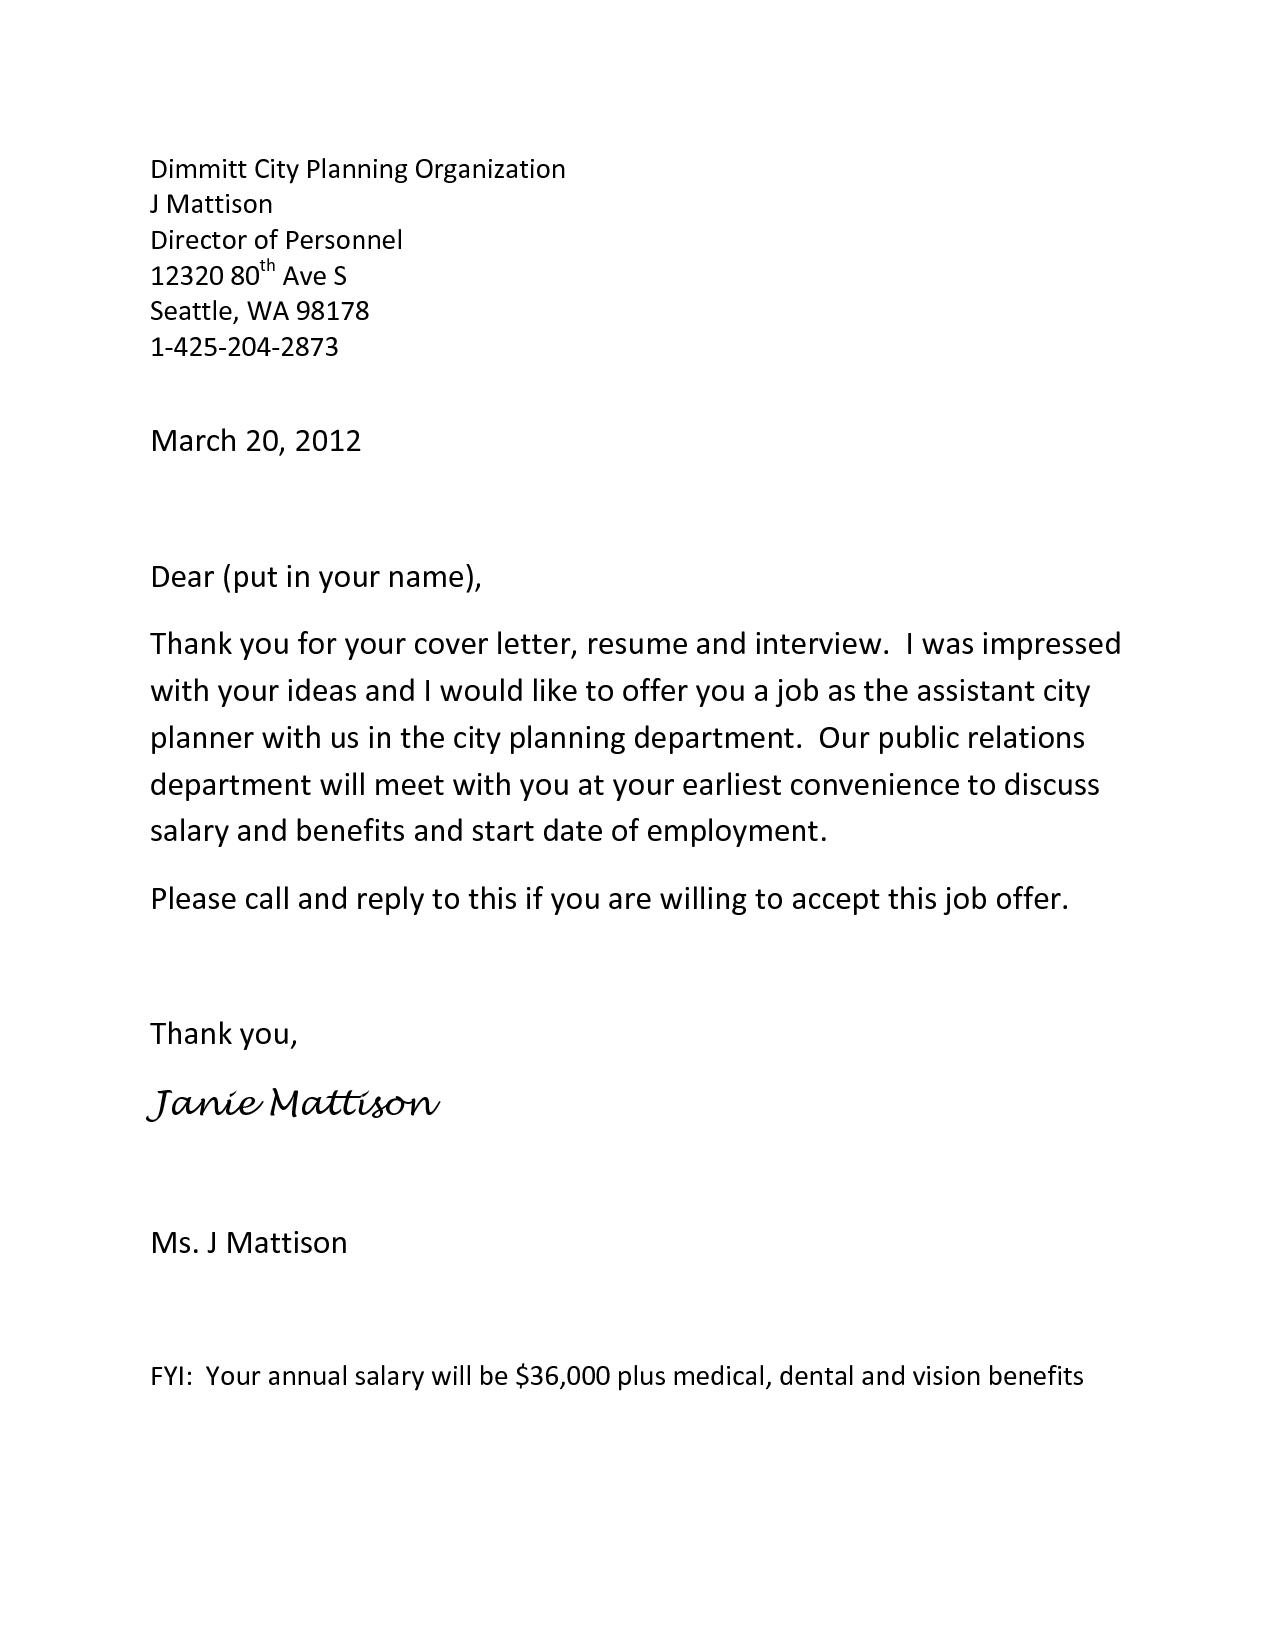 Thank You Letter After Offer Thank You Letter Sle Dental Assistant 28 Images Thank You Letter Sle .